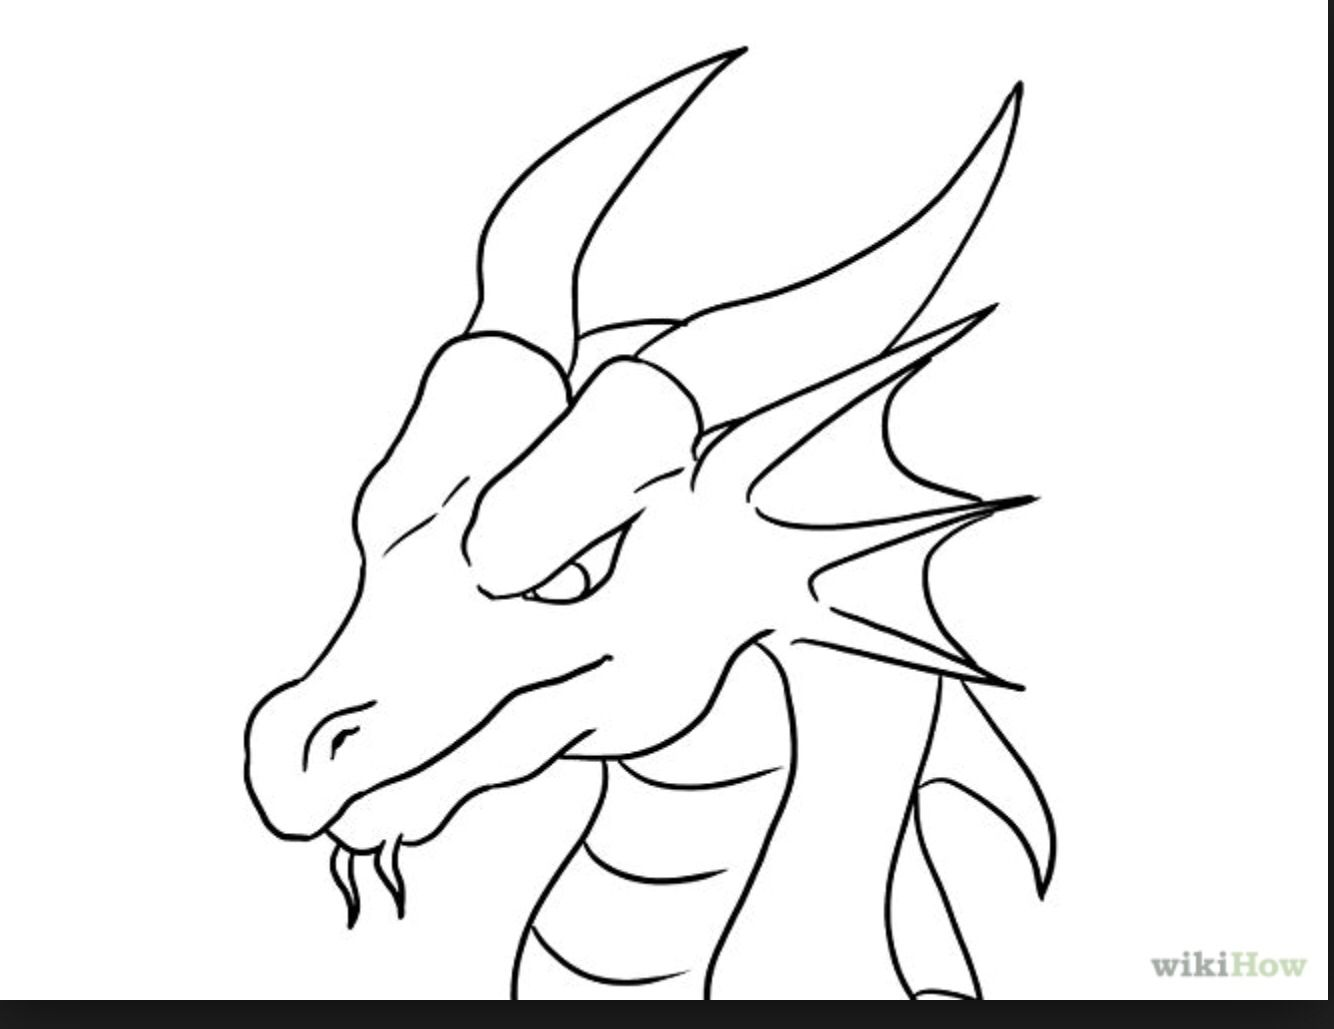 25+ best ideas about Easy Dragon Drawings on Pinterest ...